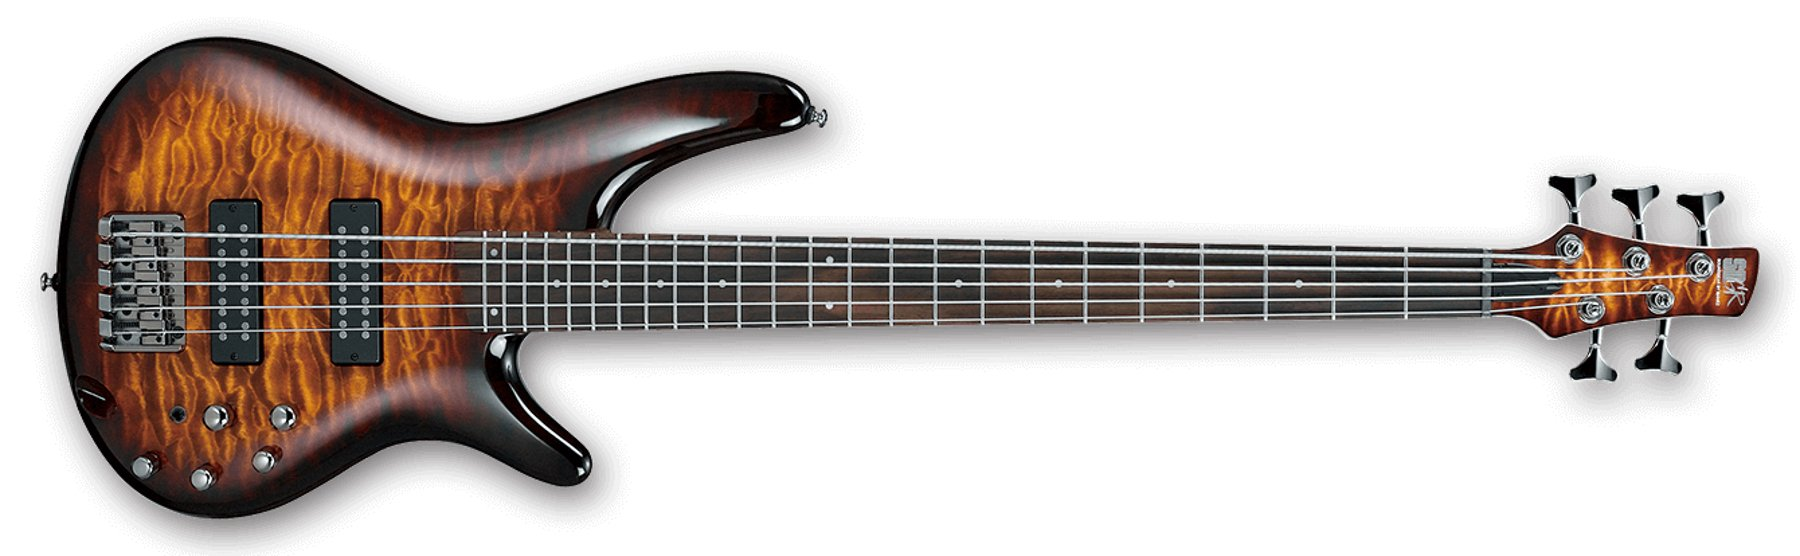 5-String Bass Guitar, 24-Fret, Rosewood Fretboard with White Dot Inlay